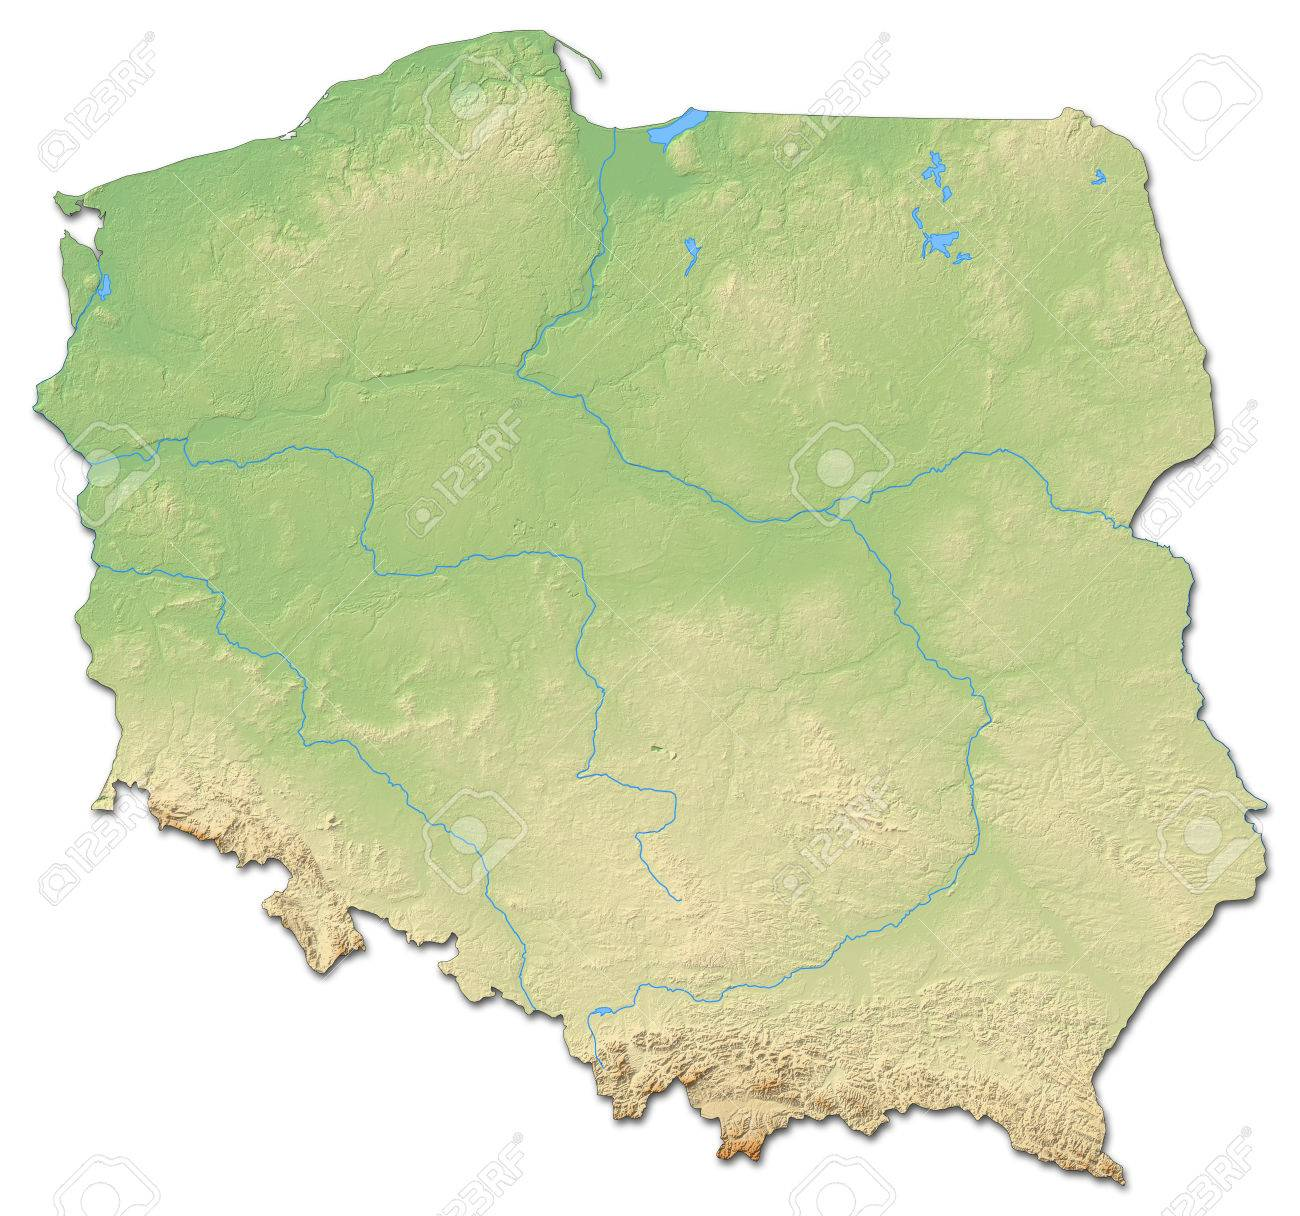 Relief map of Poland with shaded relief. - 60095626